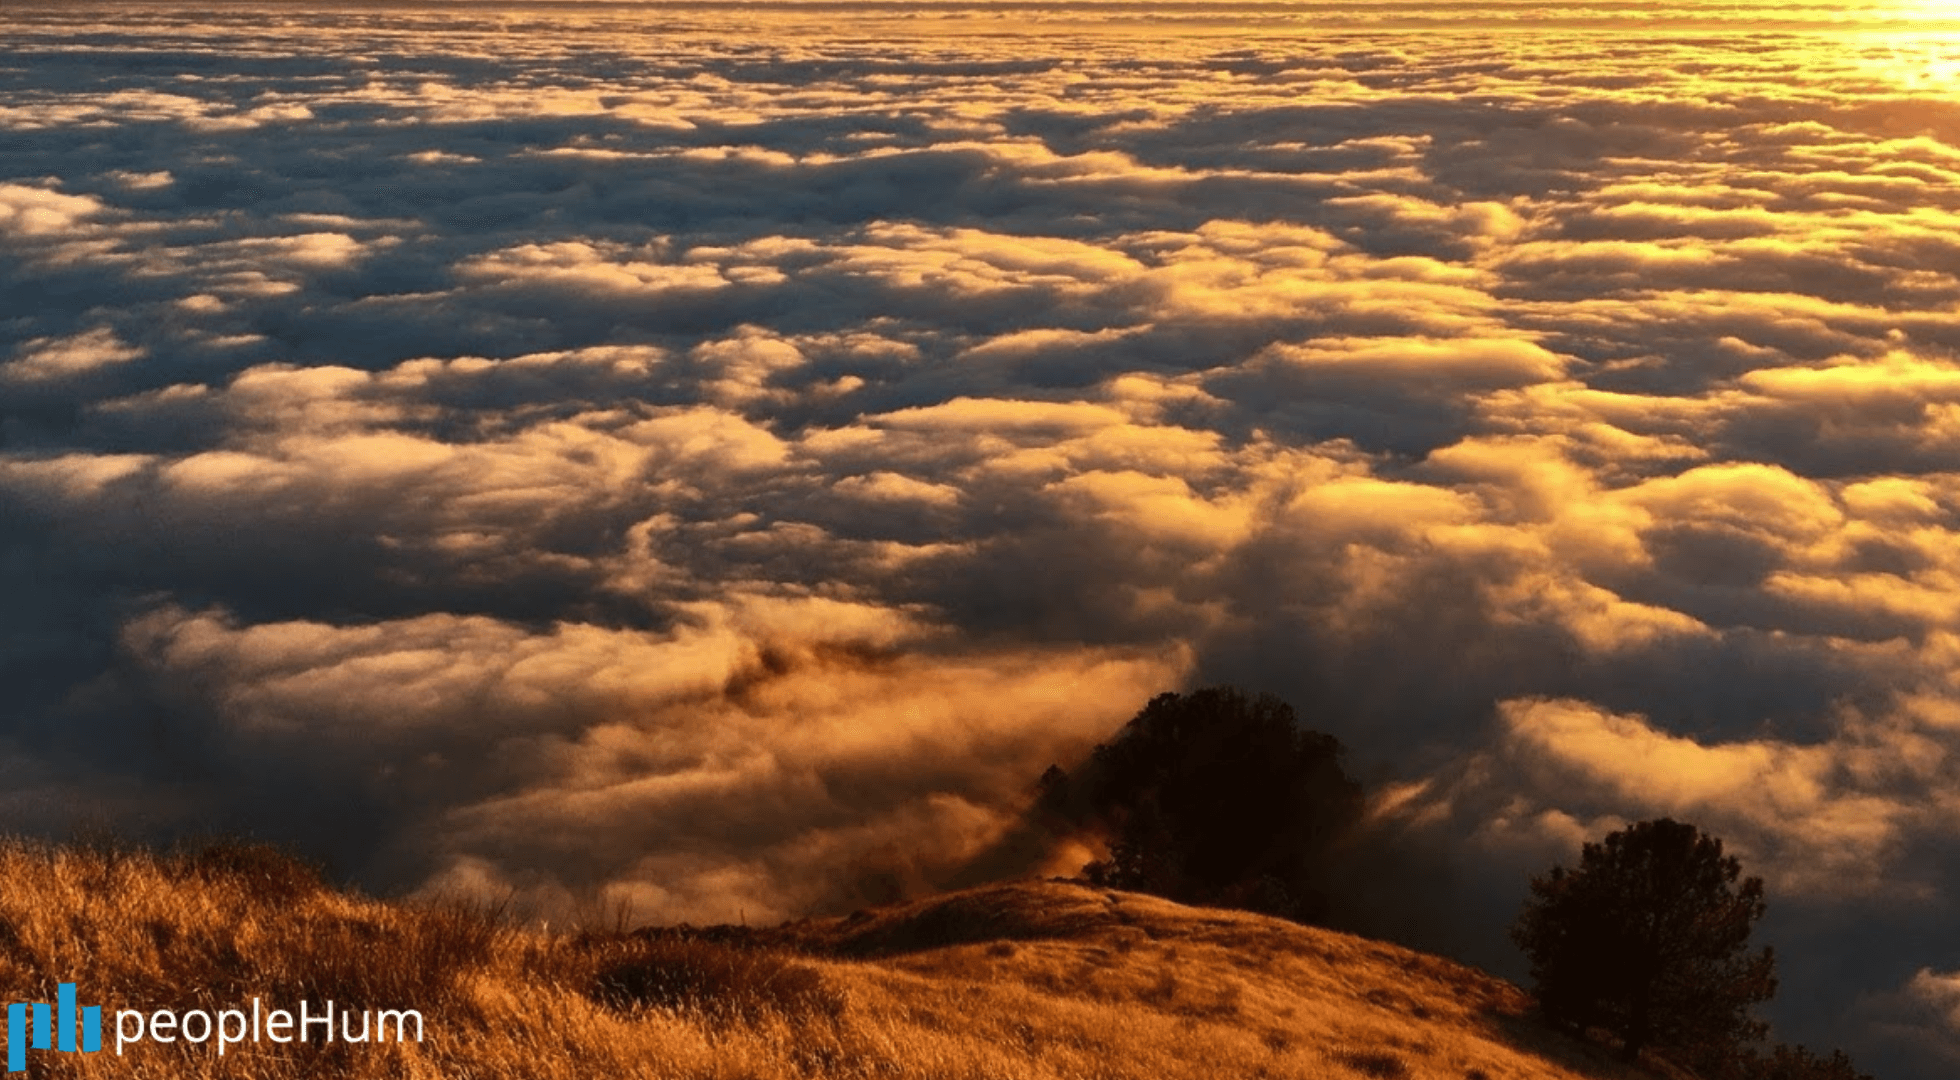 Wisdom from above the clouds